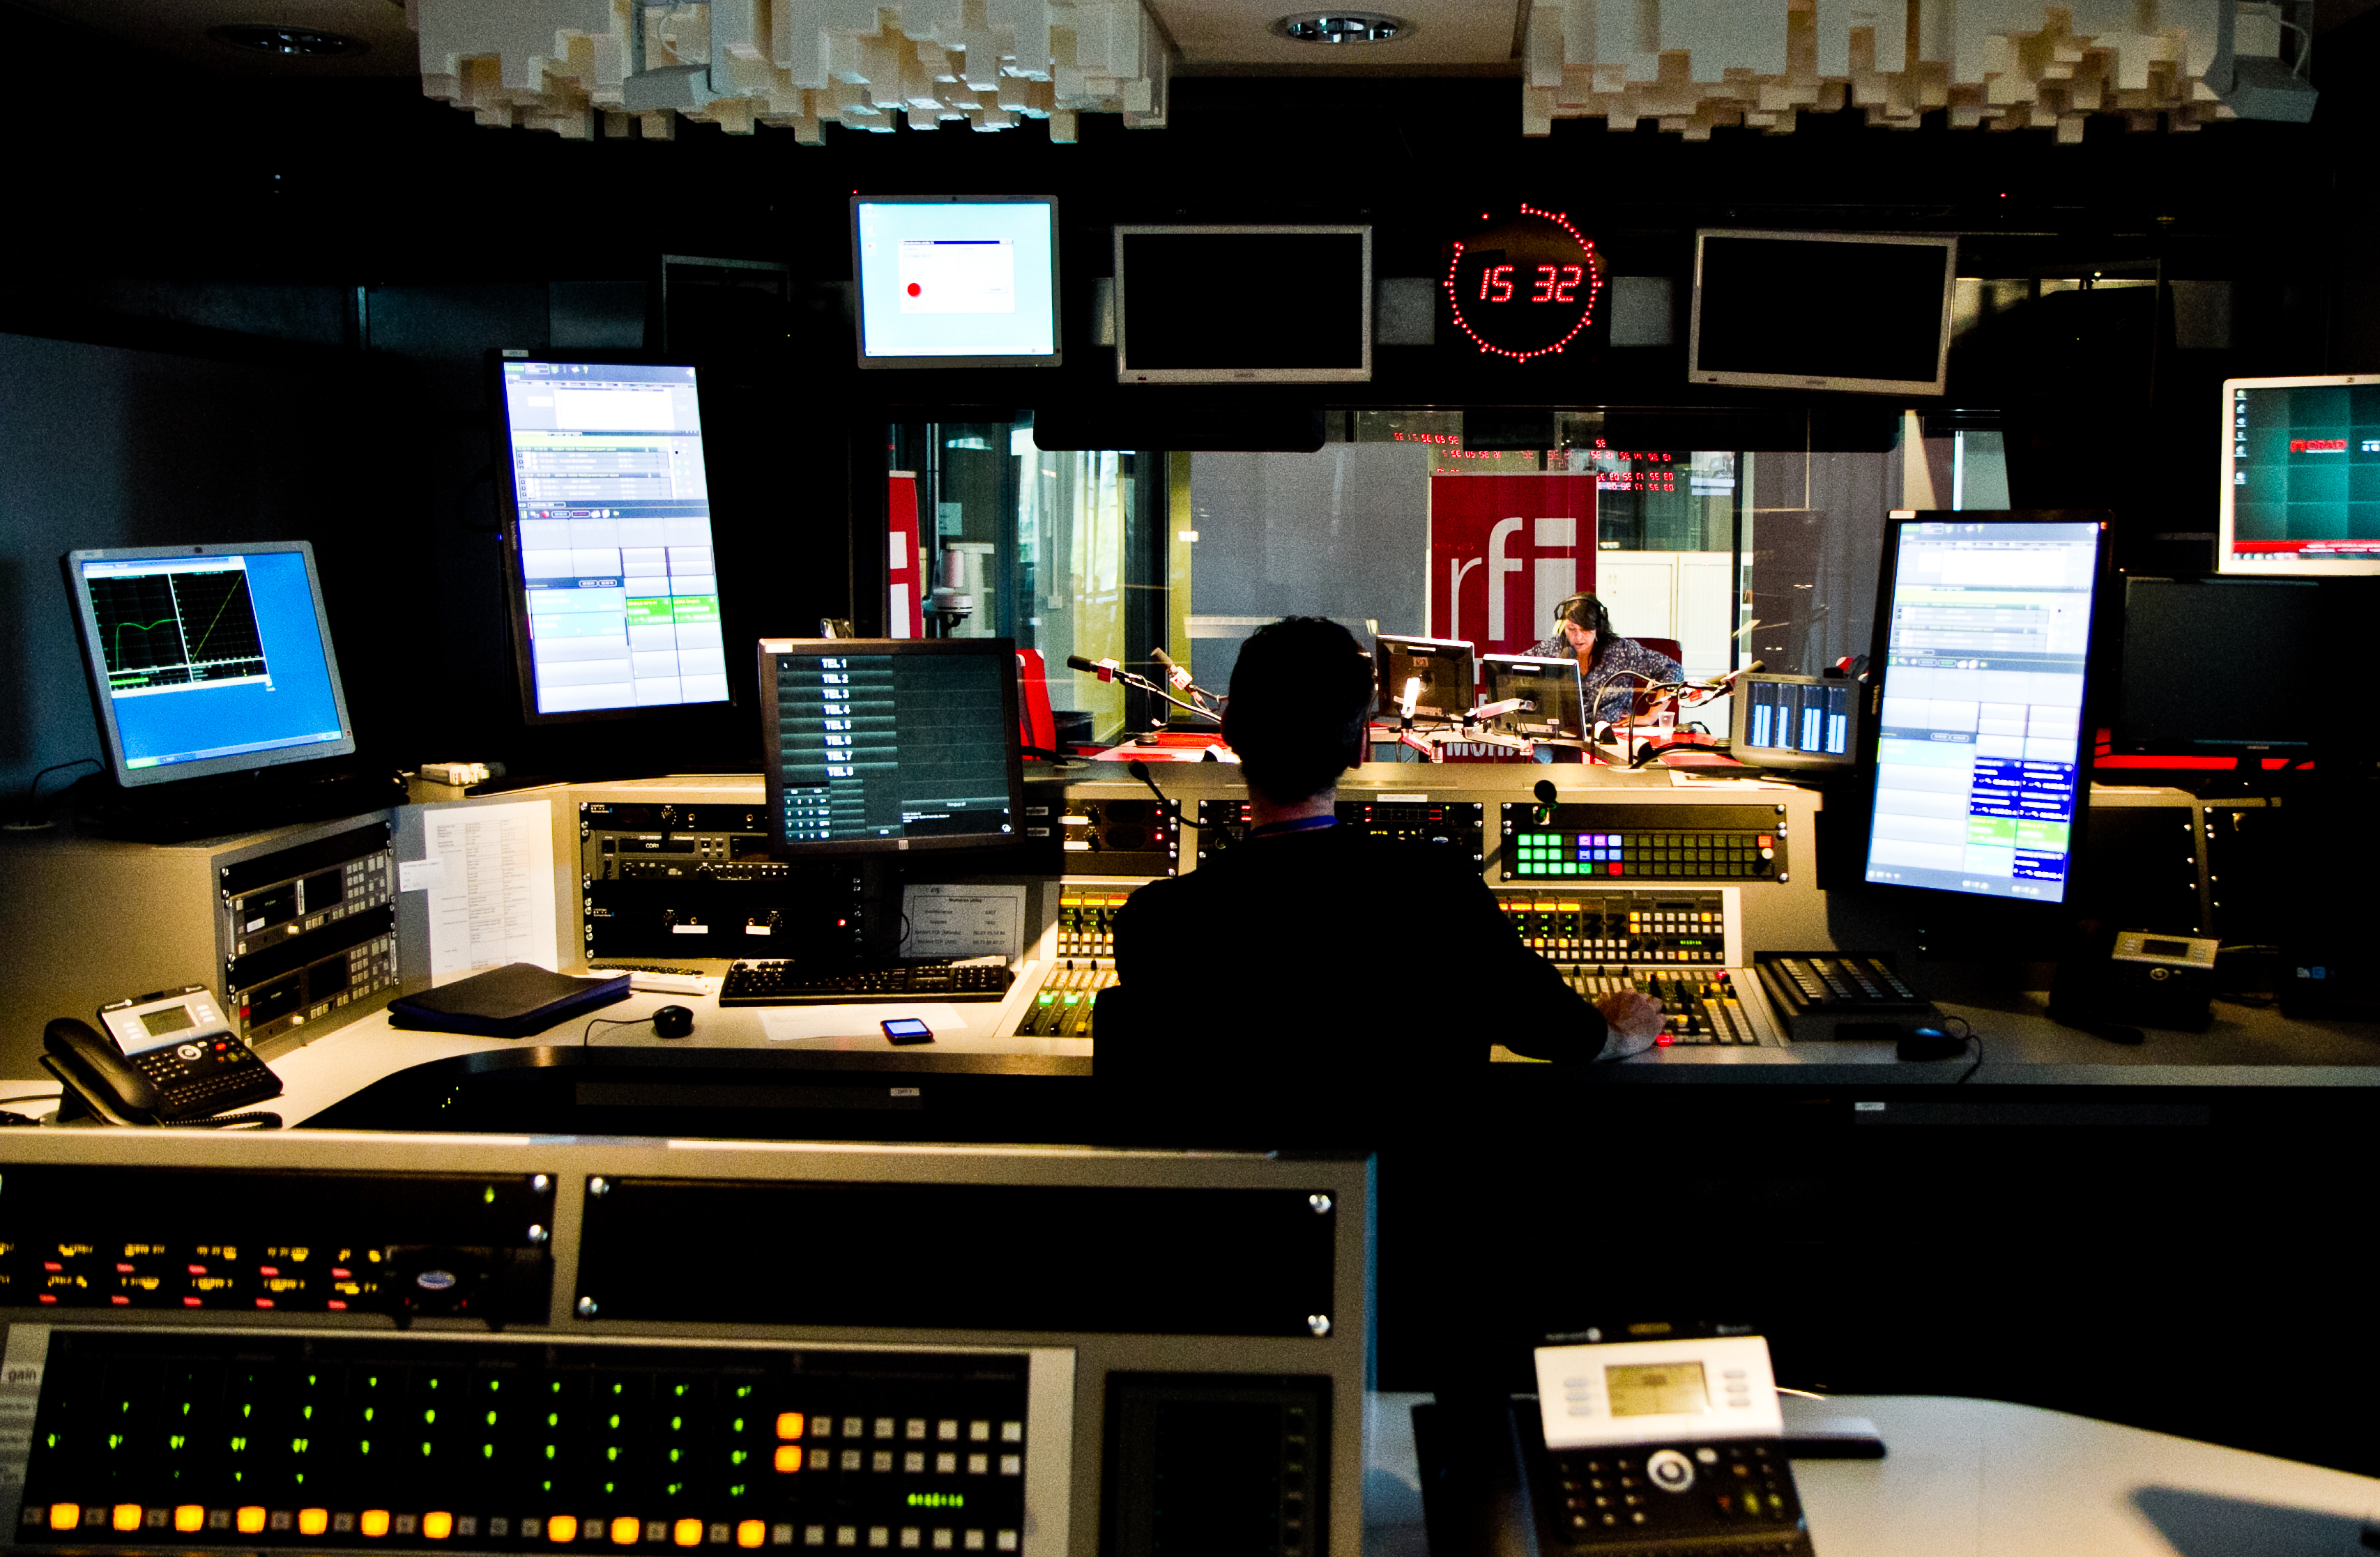 RFI : audience en hausse en Ile-de-France